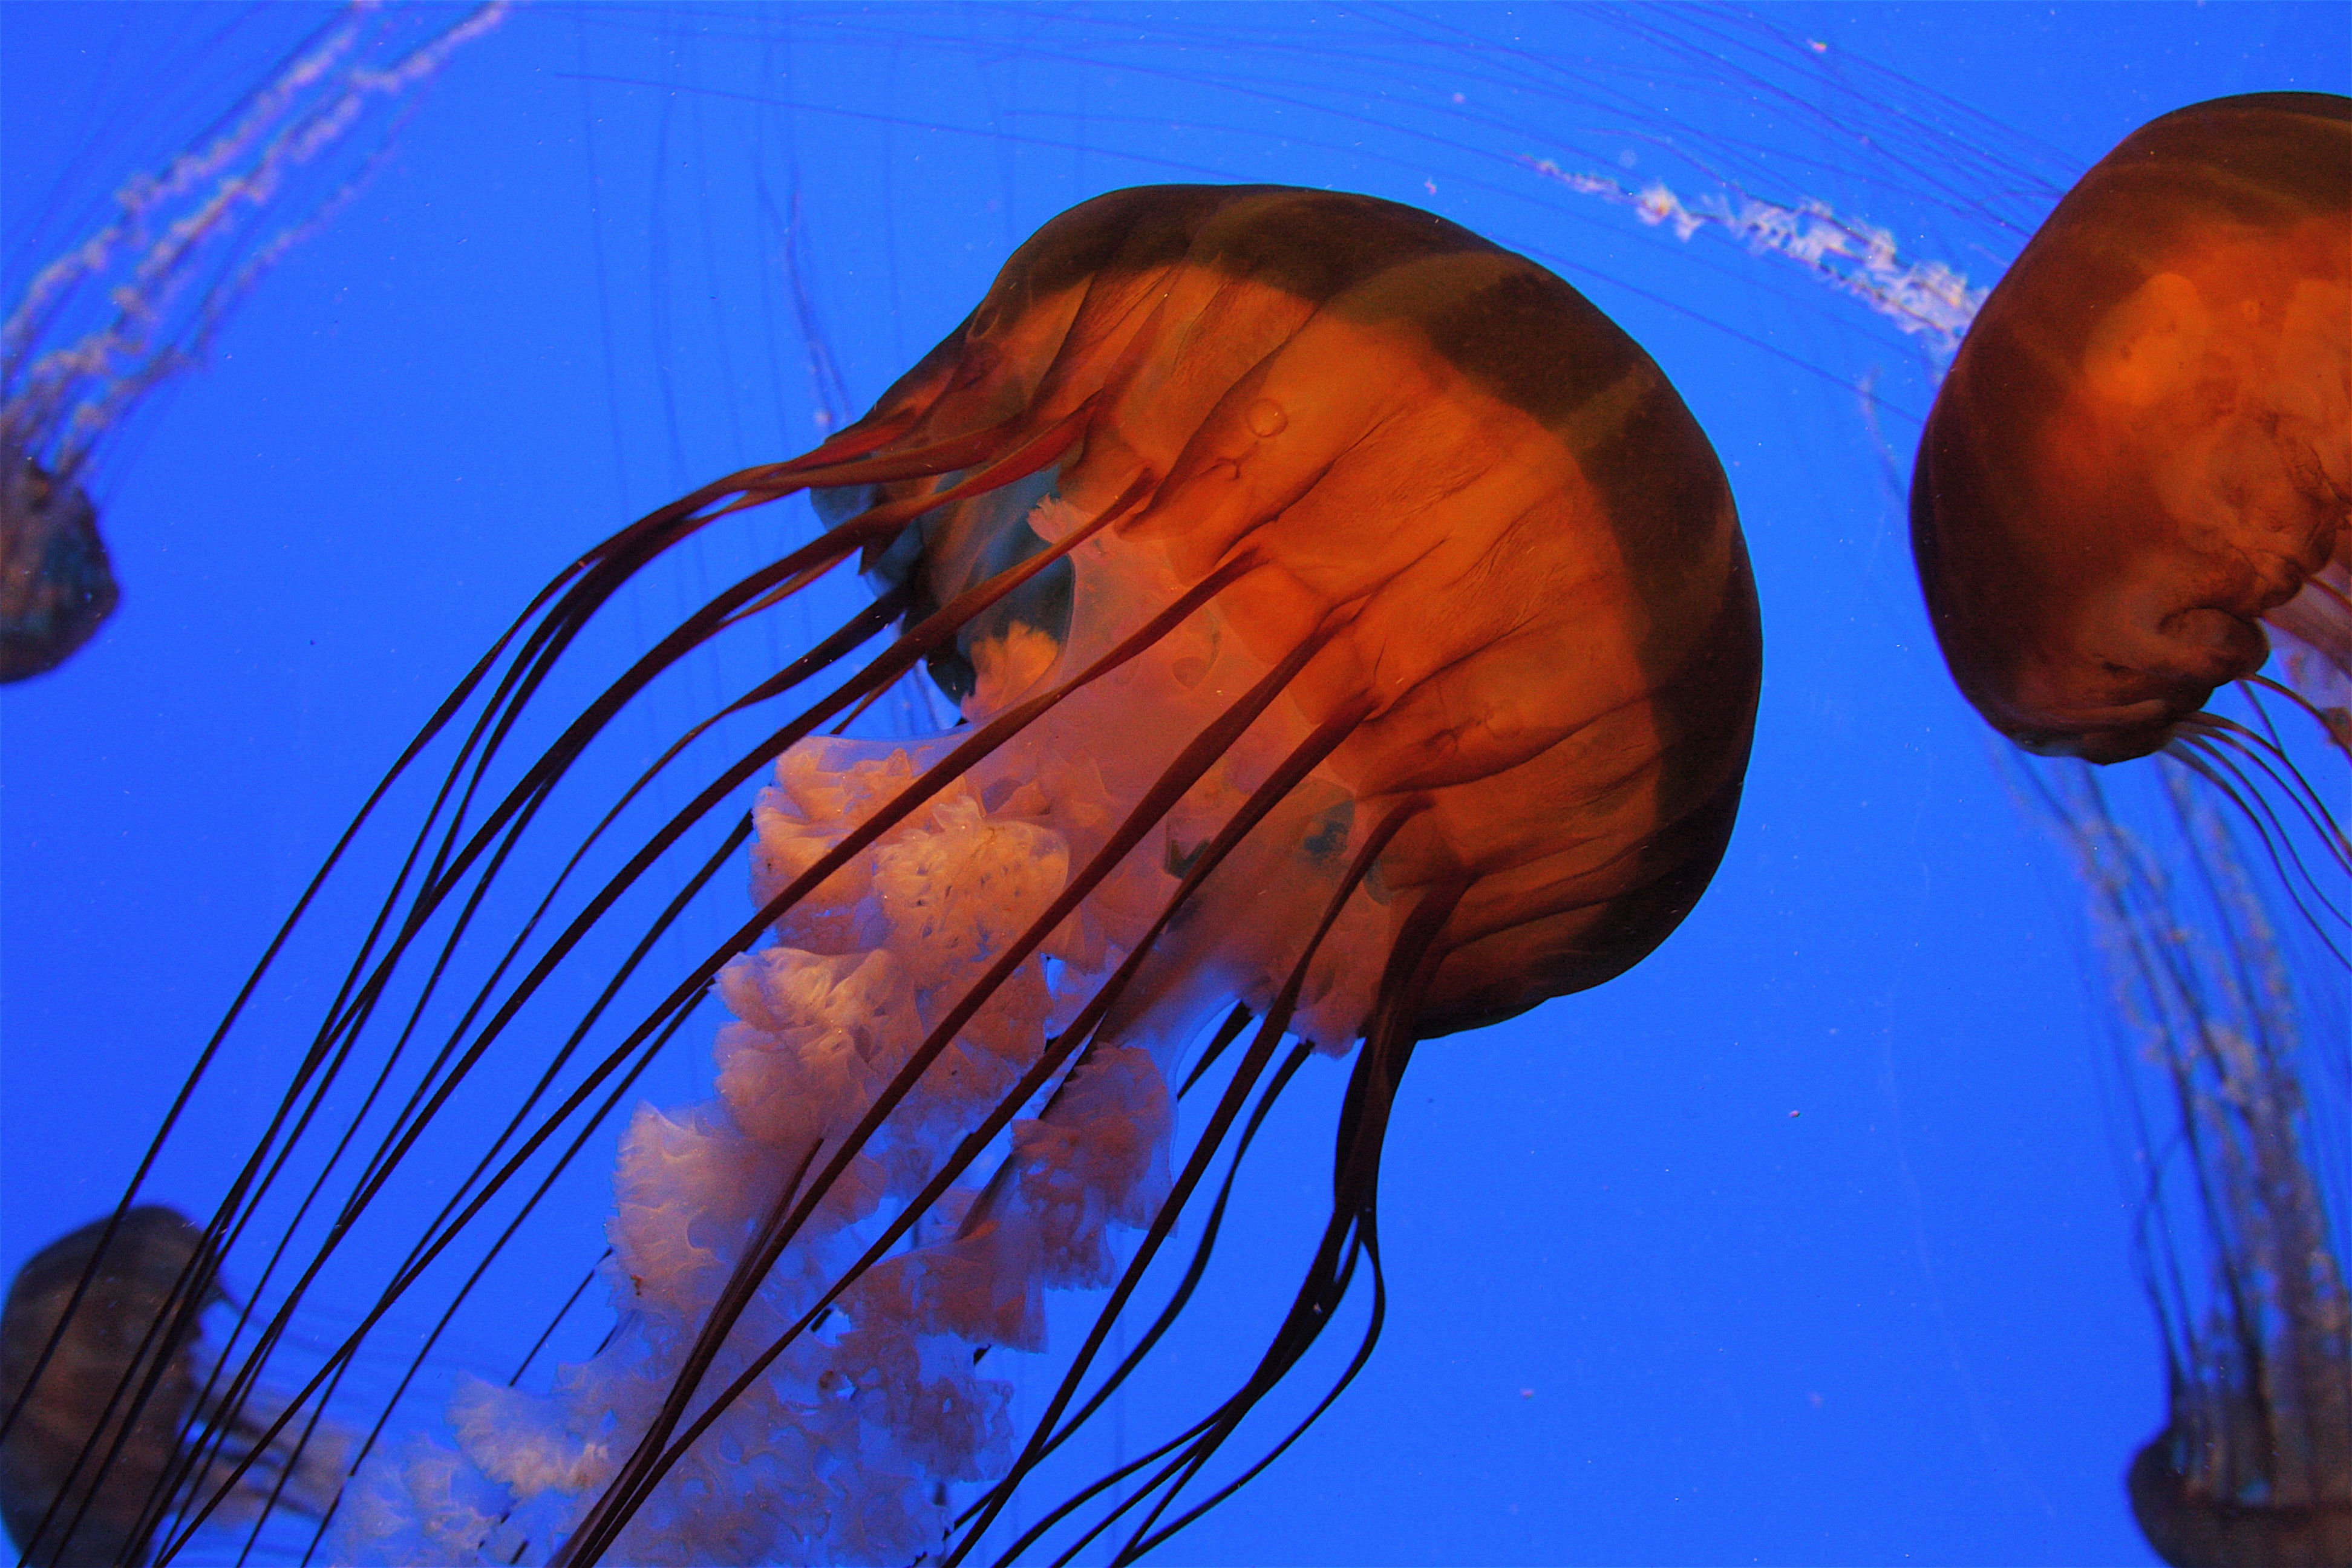 Jellyfish wallpaper home wallpaper home for Jellyfish wallpaper home